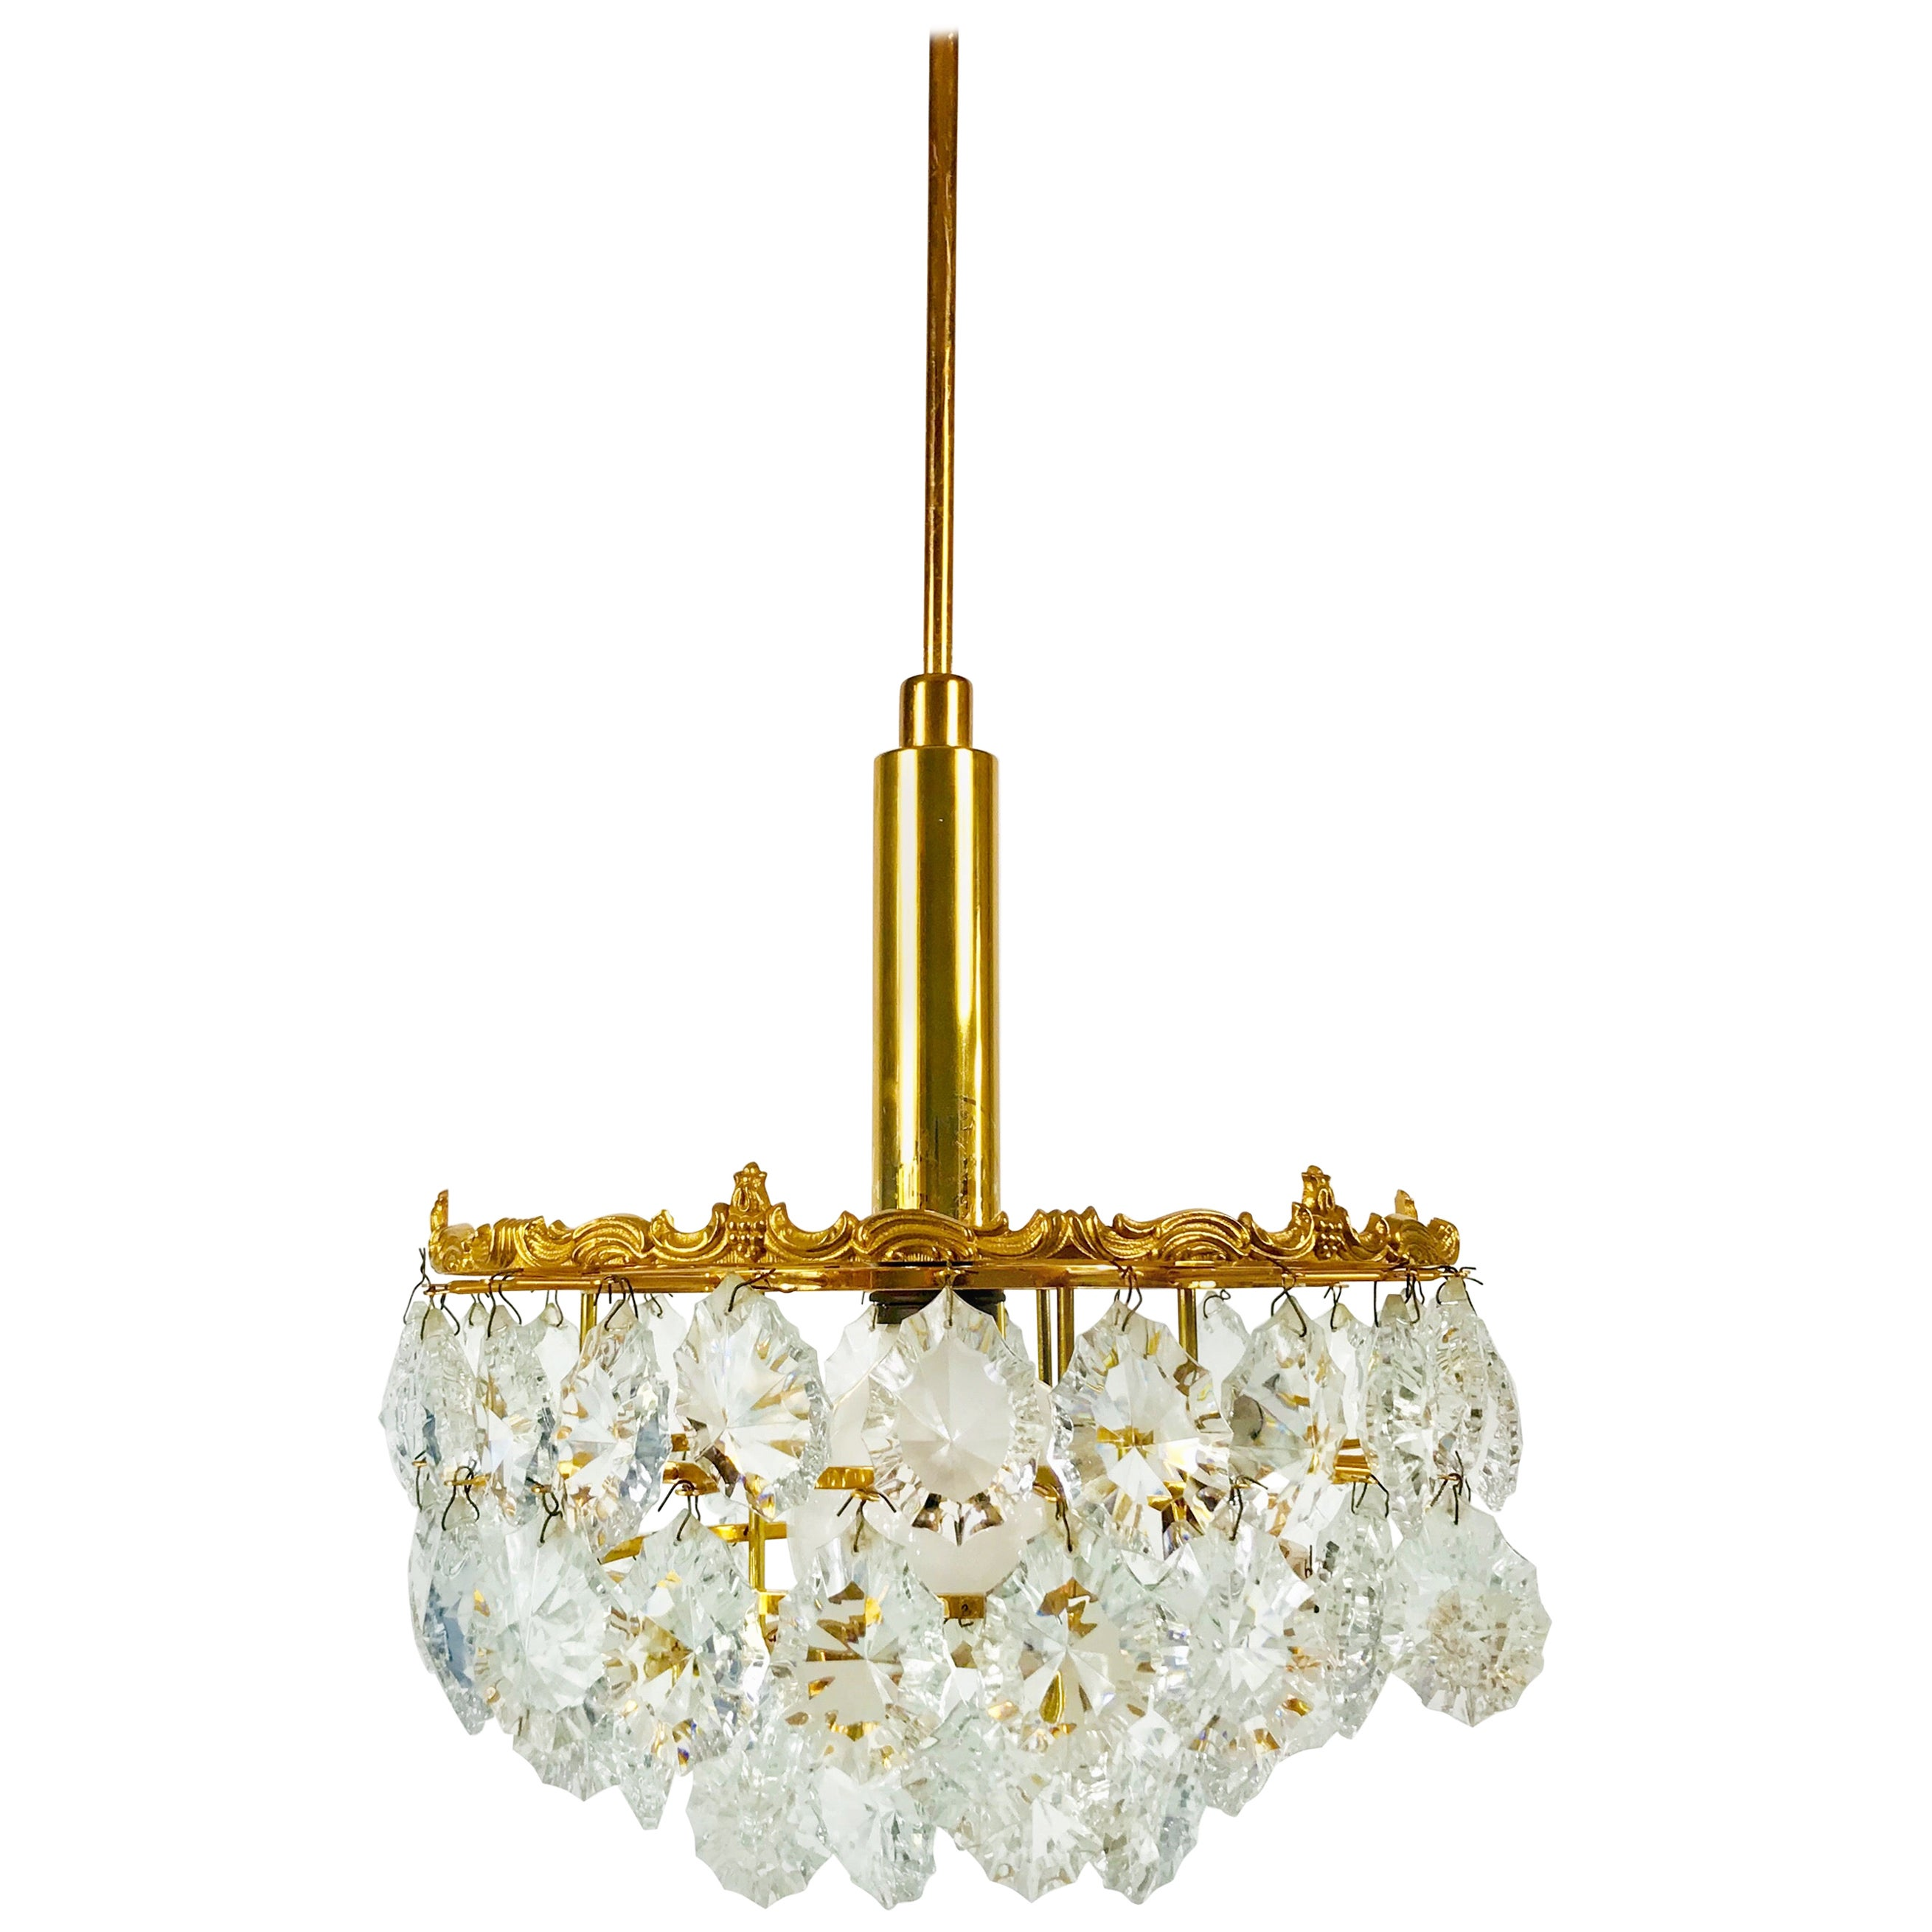 Gilt Brass and Crystal Glass 4-Tier Chandelier by Palwa, Germany, 1970s